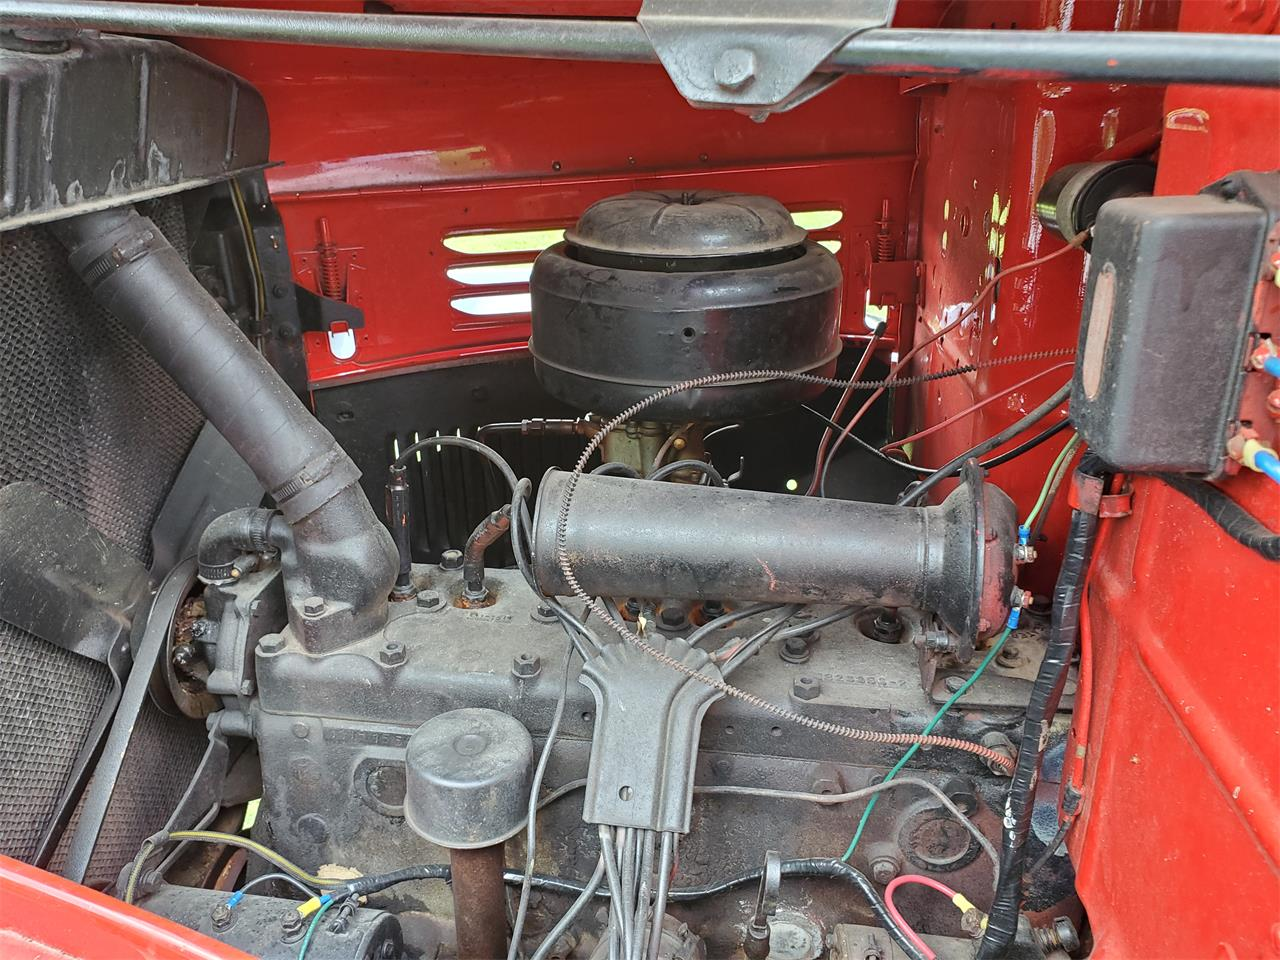 Large Picture of '46 Dodge 1 Ton Pickup located in Kentucky - $31,500.00 Offered by a Private Seller - QO6R